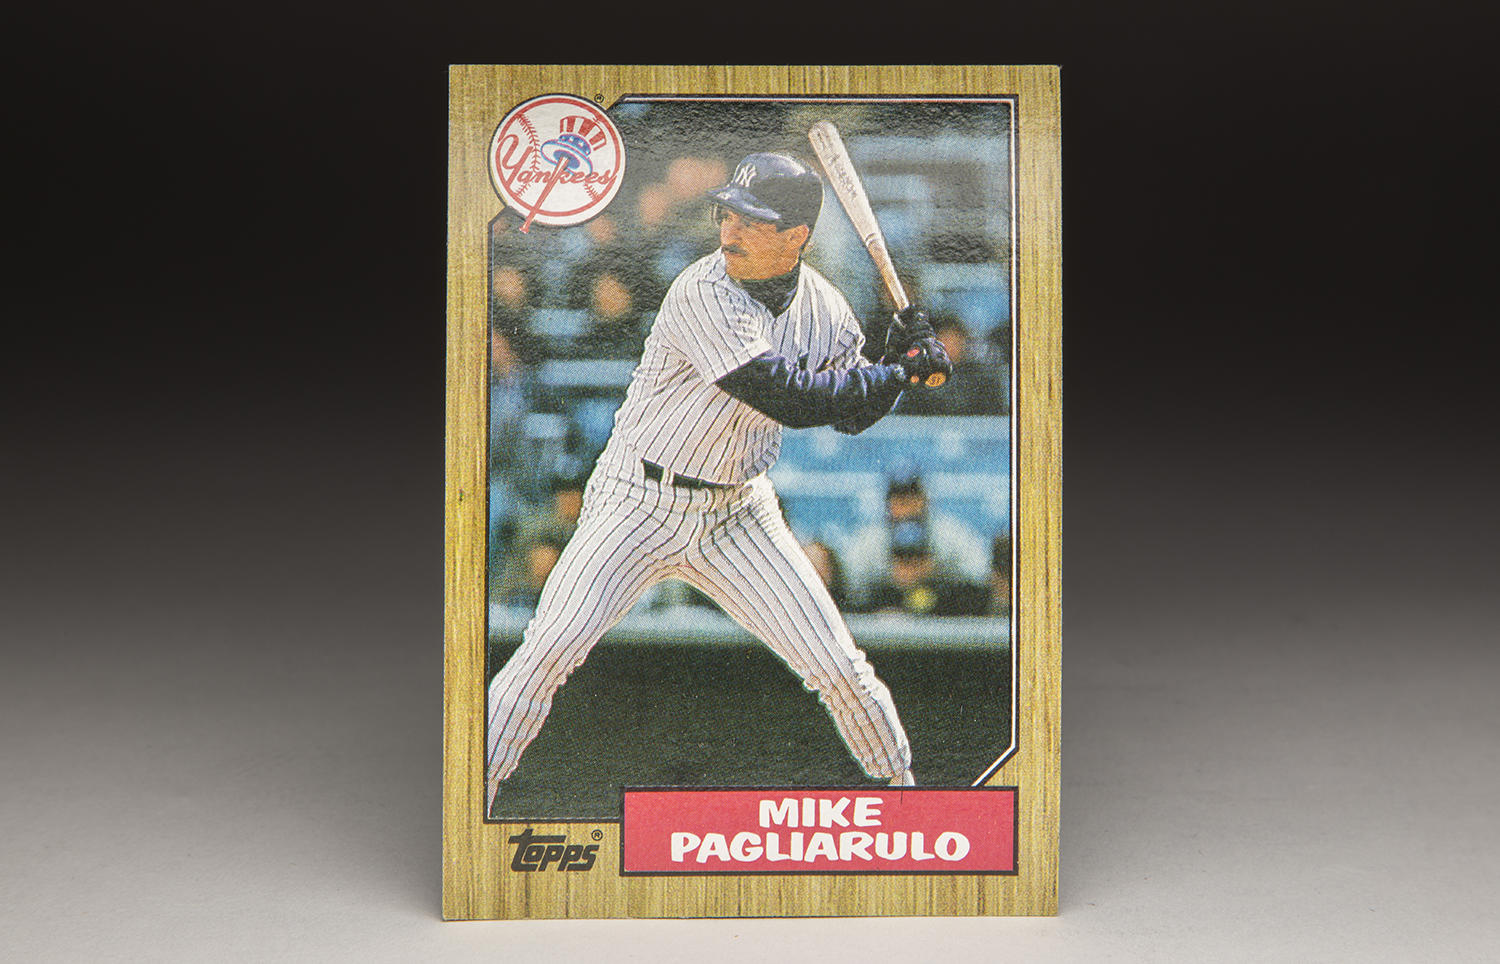 Mike Pagliarulo is shown taking a swing on the front of his 1987 Topps card. (Milo Stewart Jr. / National Baseball Hall of Fame and Museum)